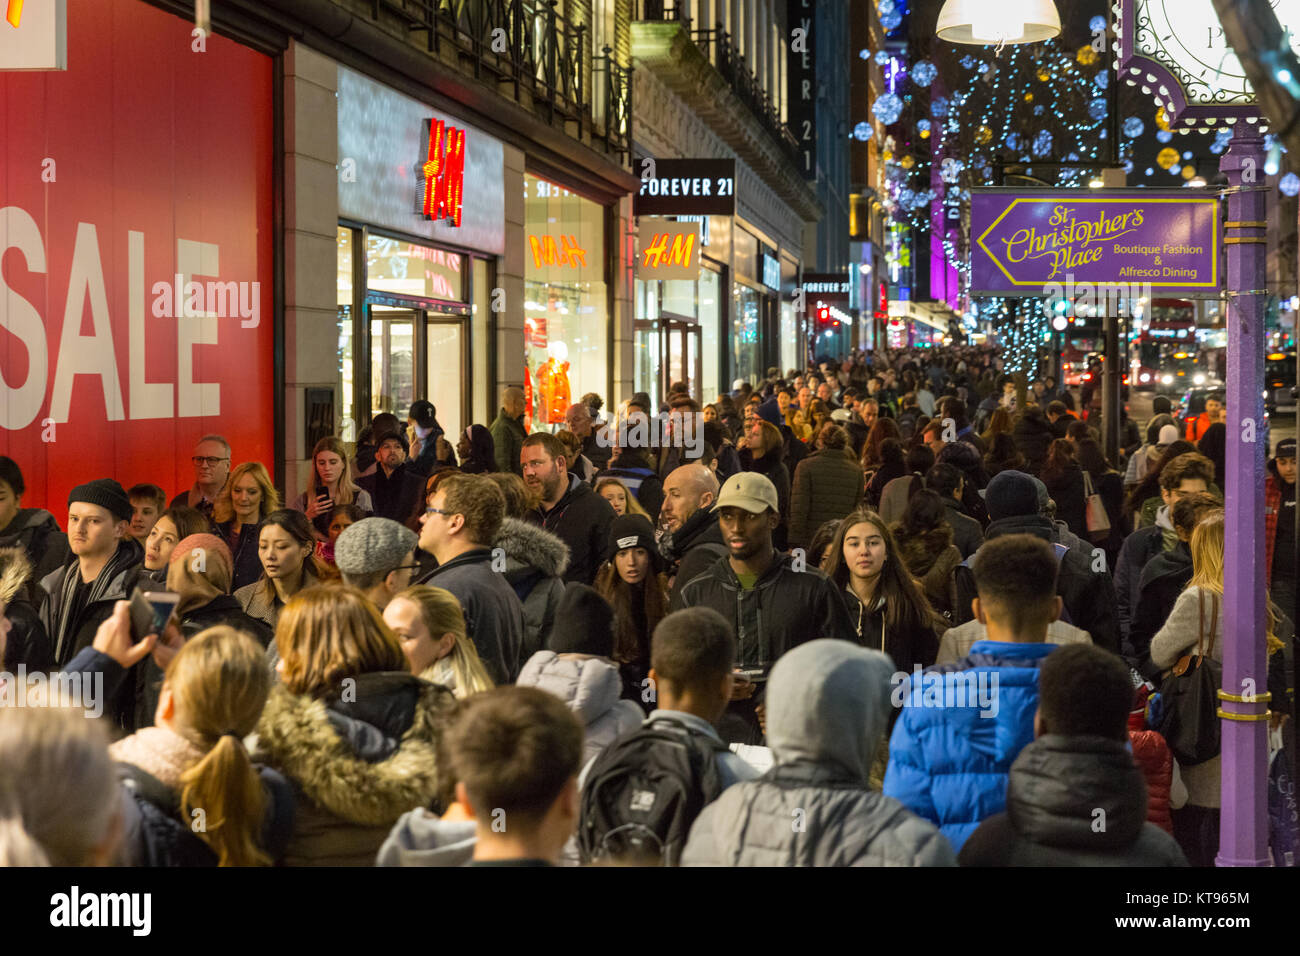 oxford-street-london-23rd-dec-2017-on-the-evening-before-christmas-KT965M.jpg